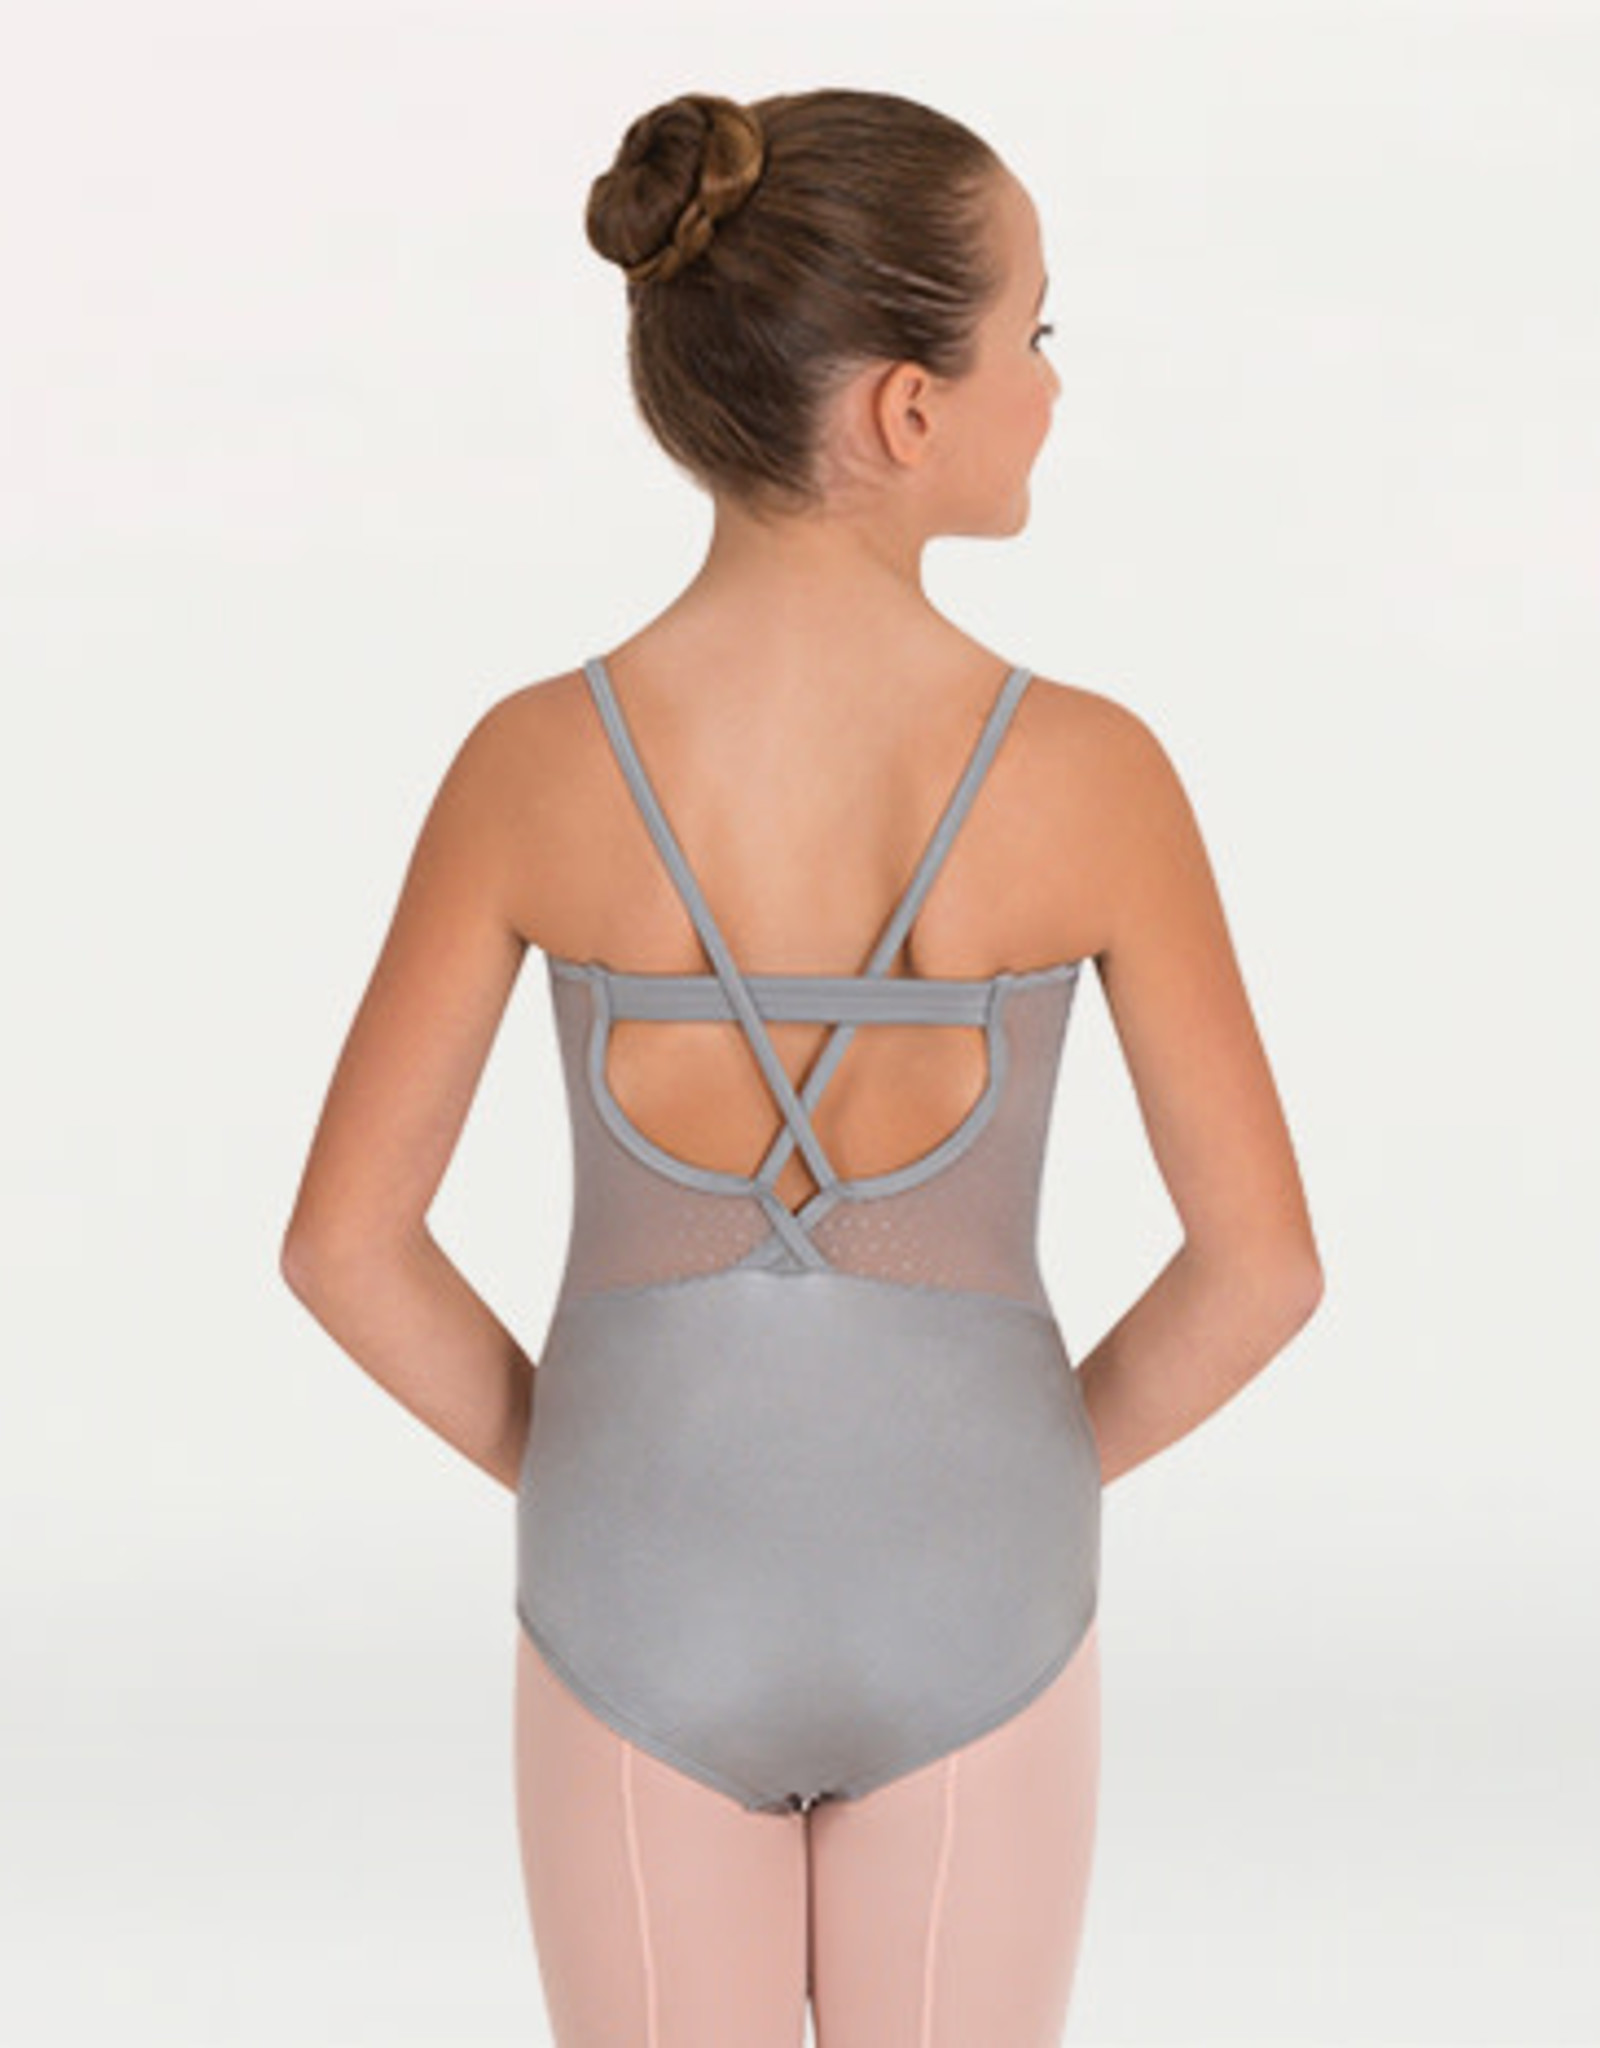 Body Wrappers Body Wrappers Tyler Peck Designs Leotard P1182